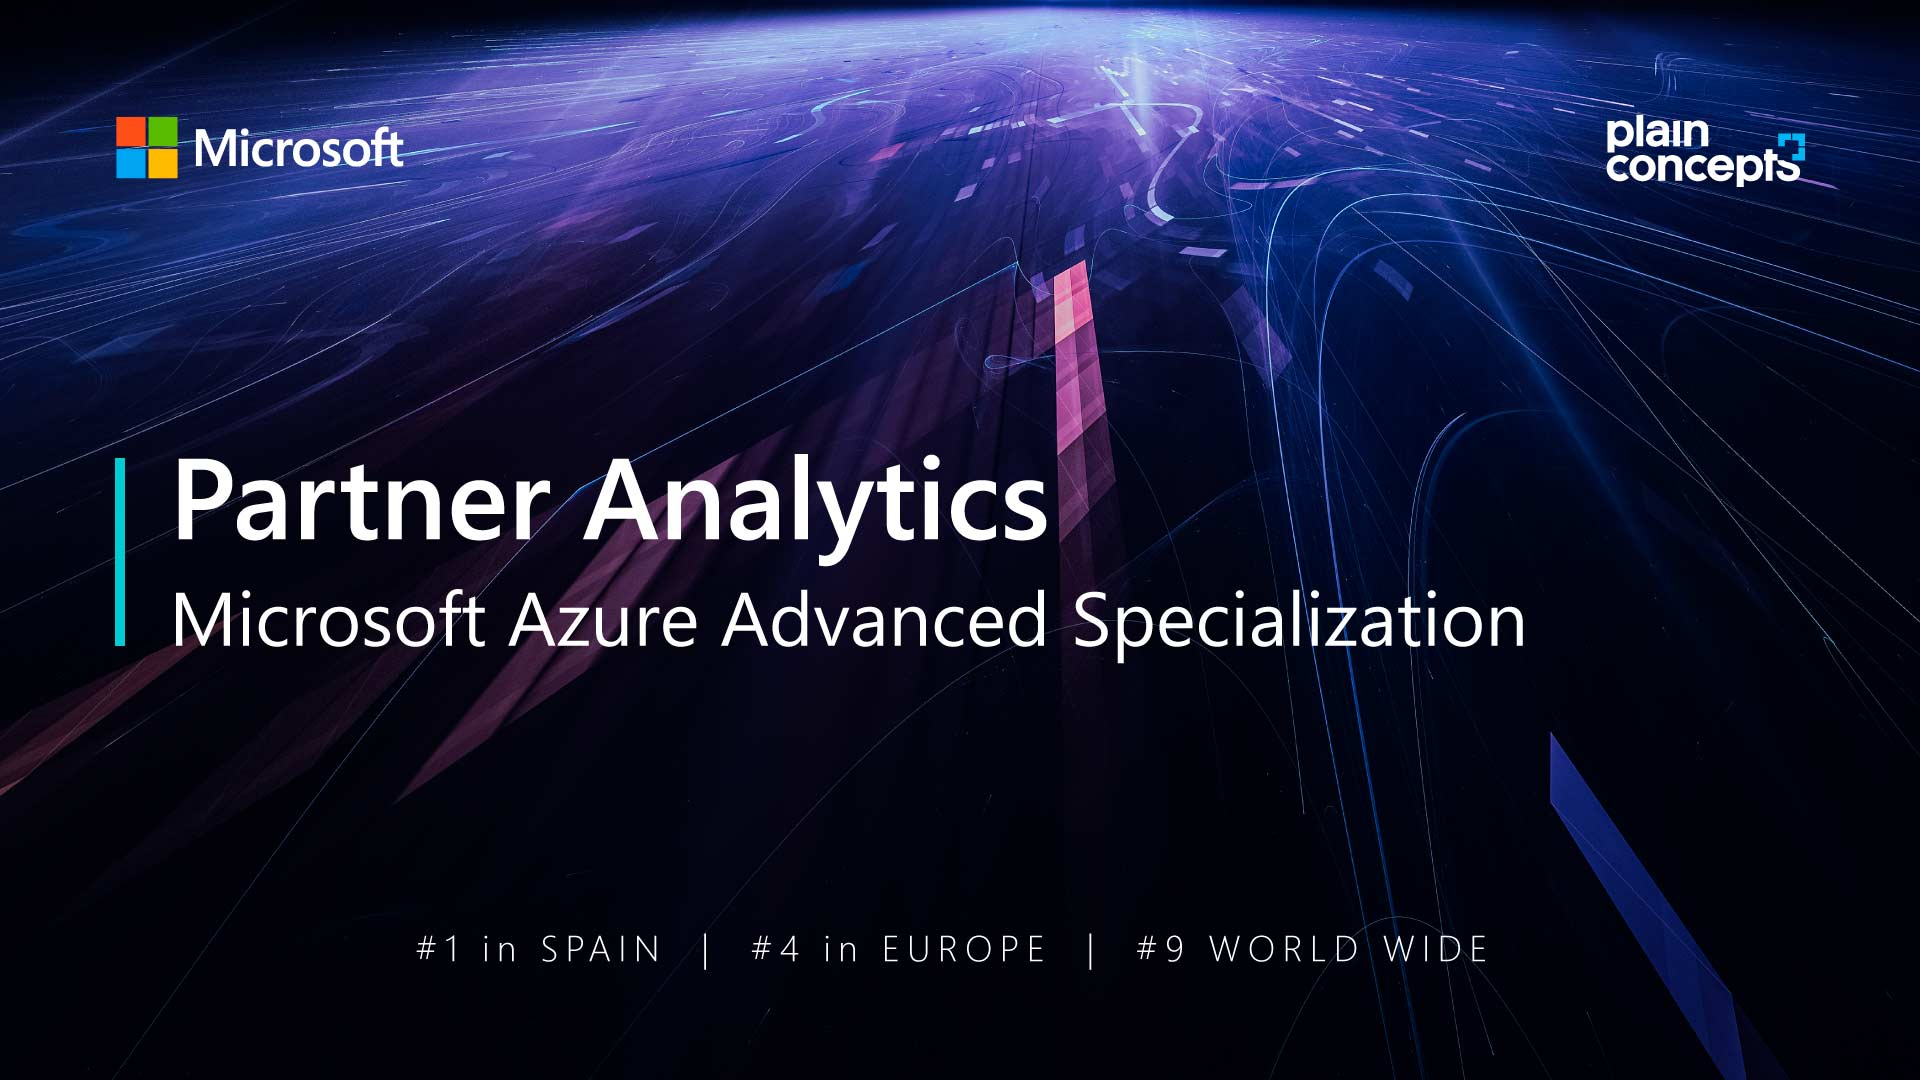 Microsoft Partner Analytics Azure Advanced Specialization